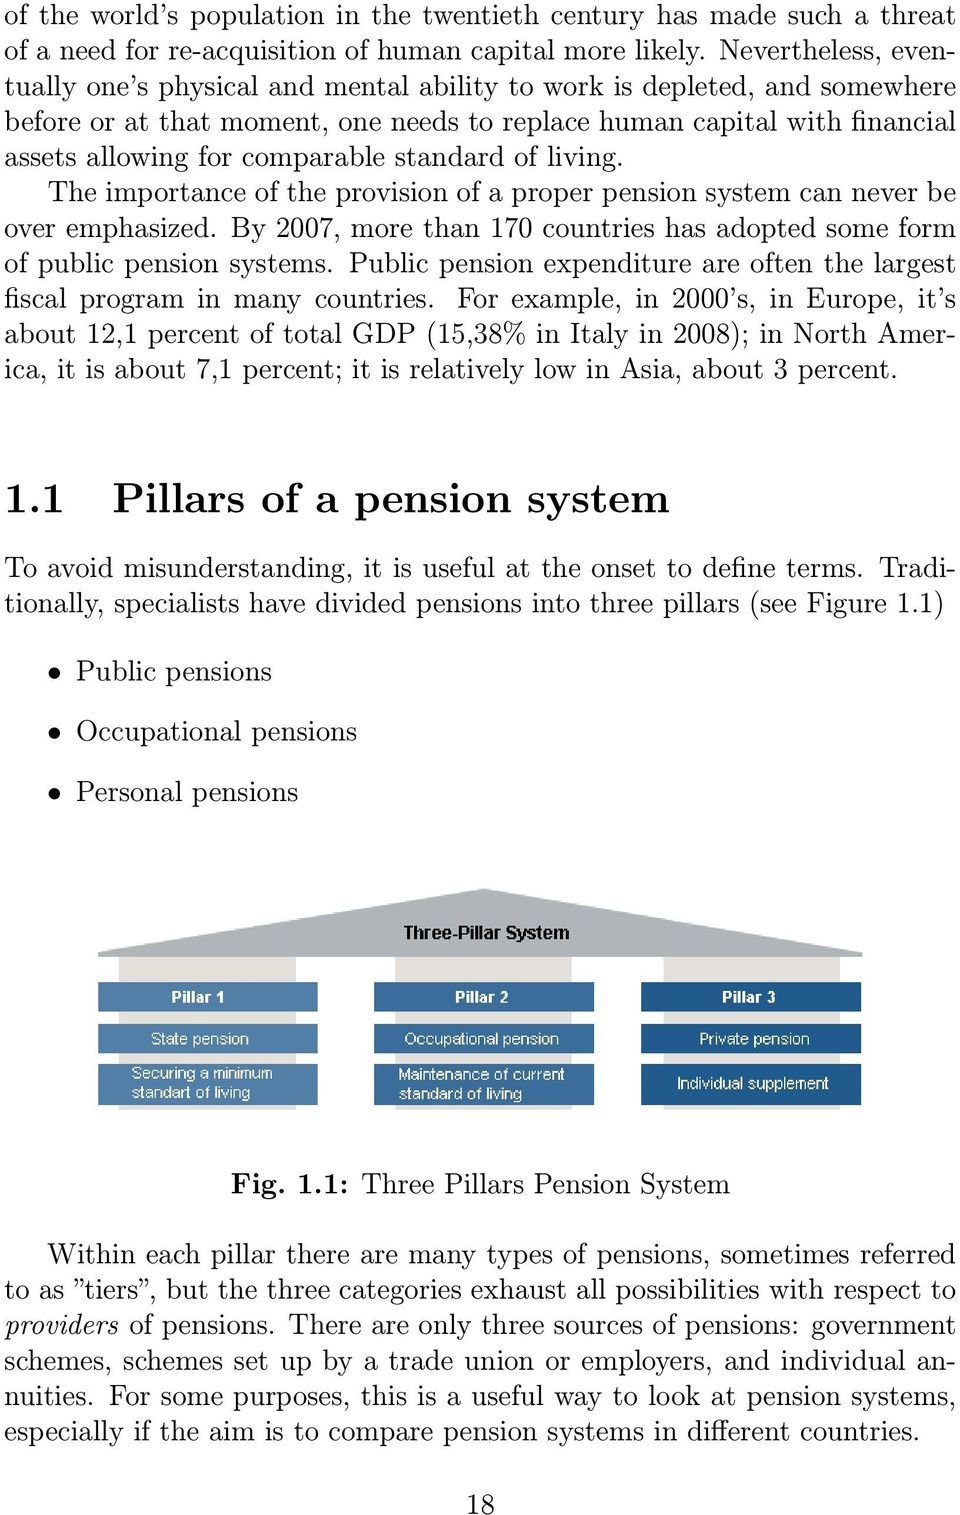 comparable standard of living. The importance of the provision of a proper pension system can never be over emphasized.